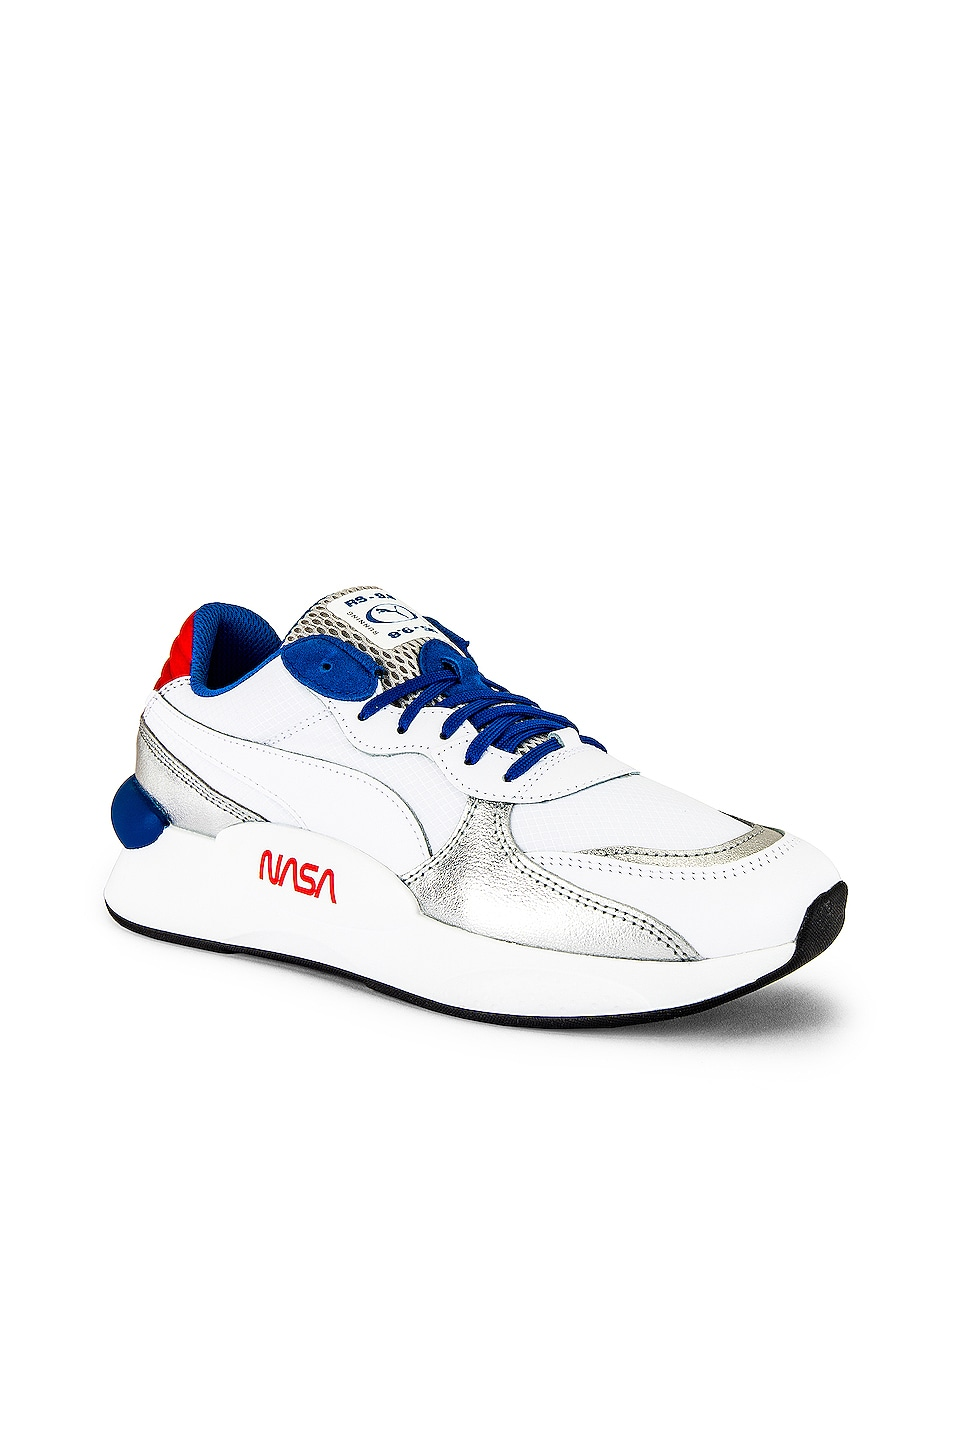 Image 1 of Puma Select RS 9.8 Space Agency in Puma White